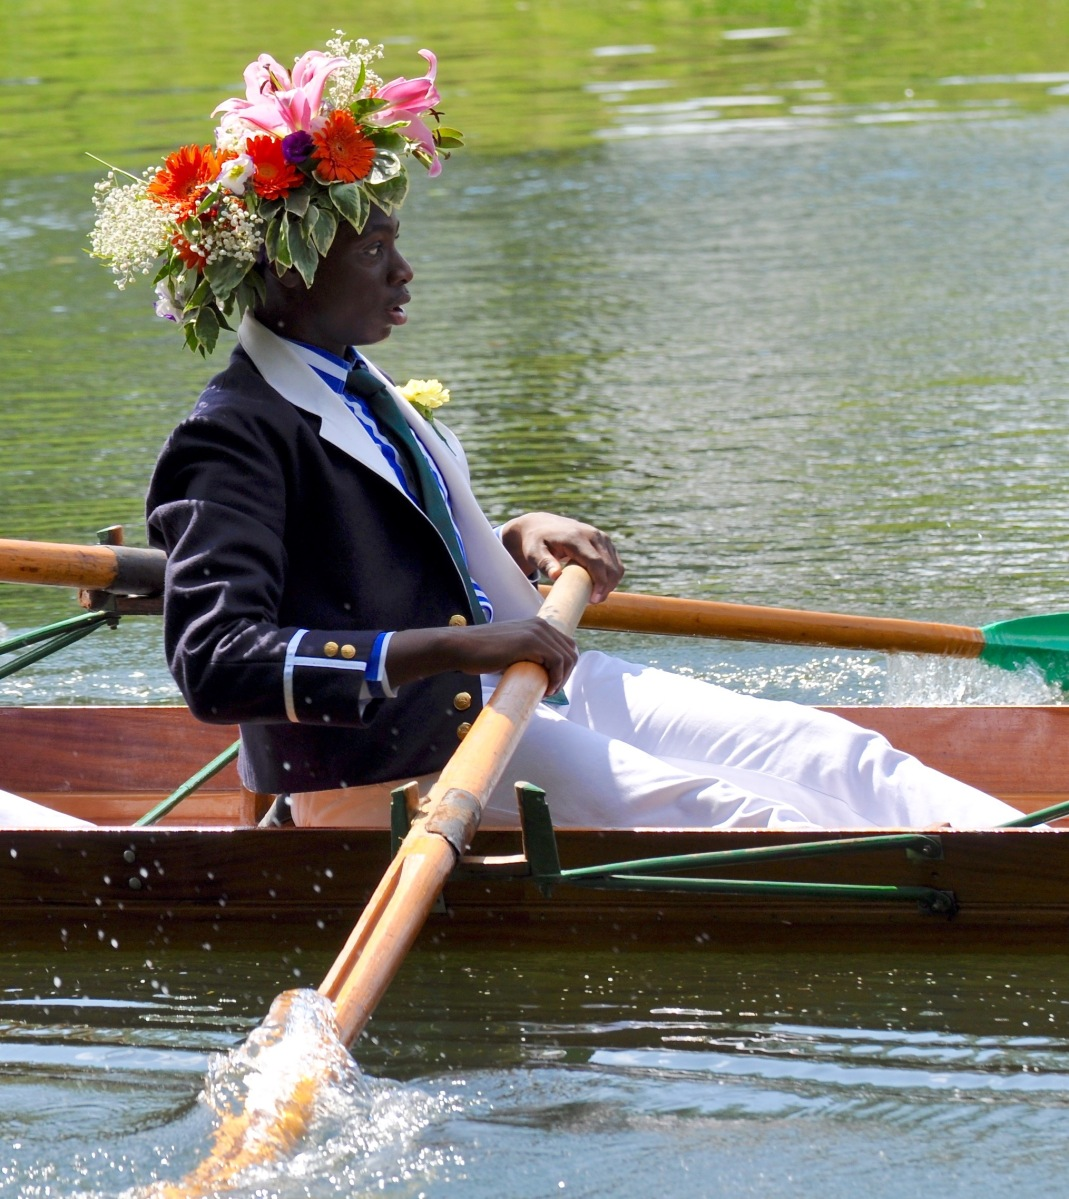 Eton's Procession of Boats: History Rows Past